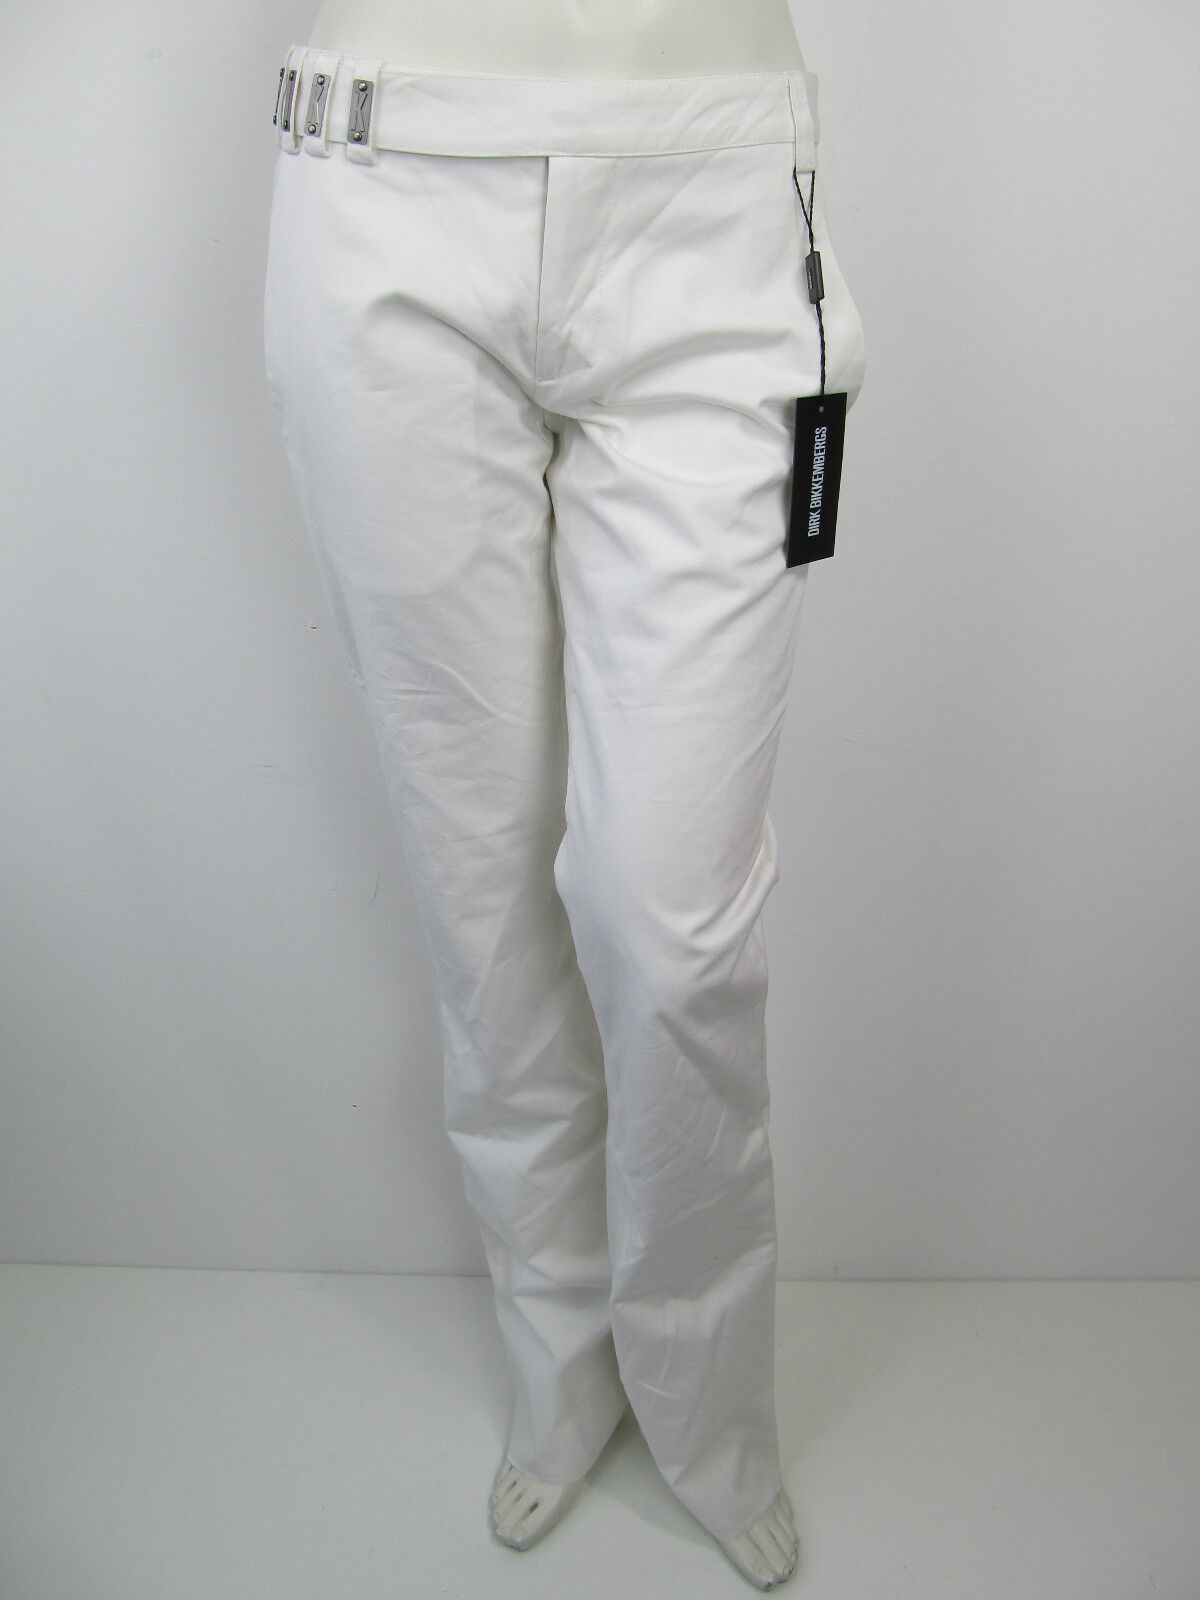 Dirk Bikkembergs Damen Hose Pantalon Pants Weiss De 34  IT 40